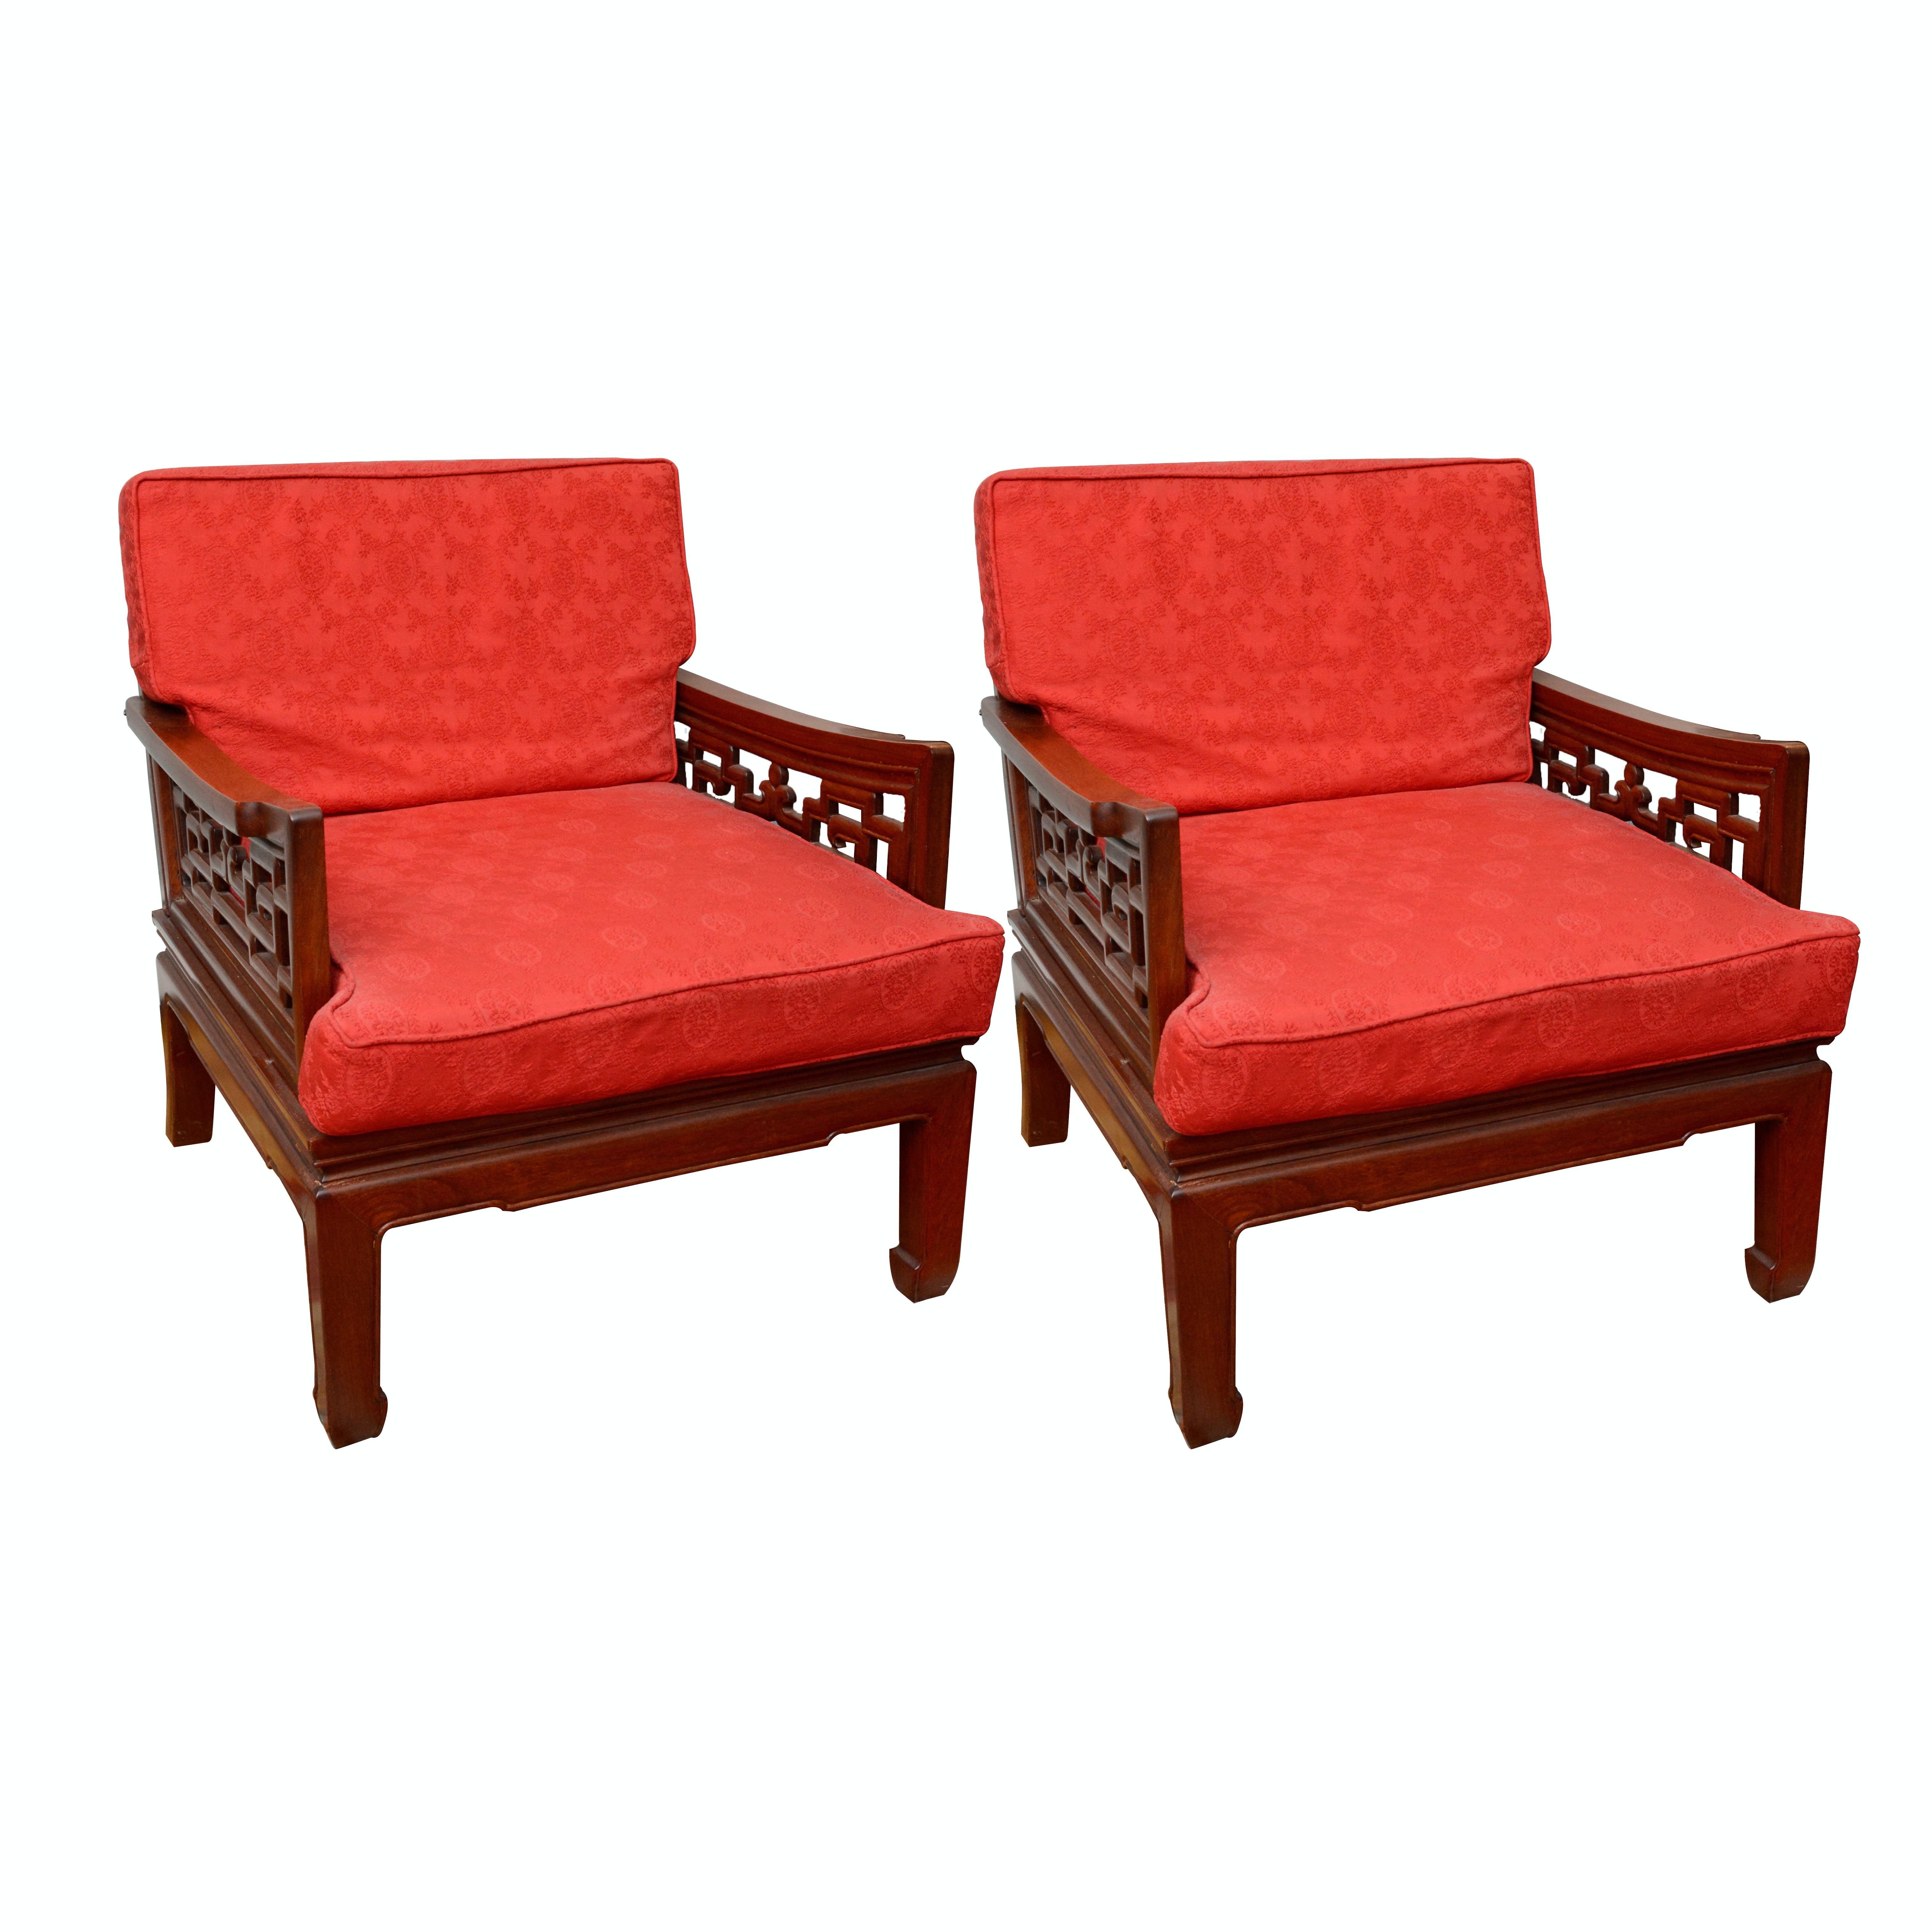 Vintage Chinese Inspired Rosewood Armchairs